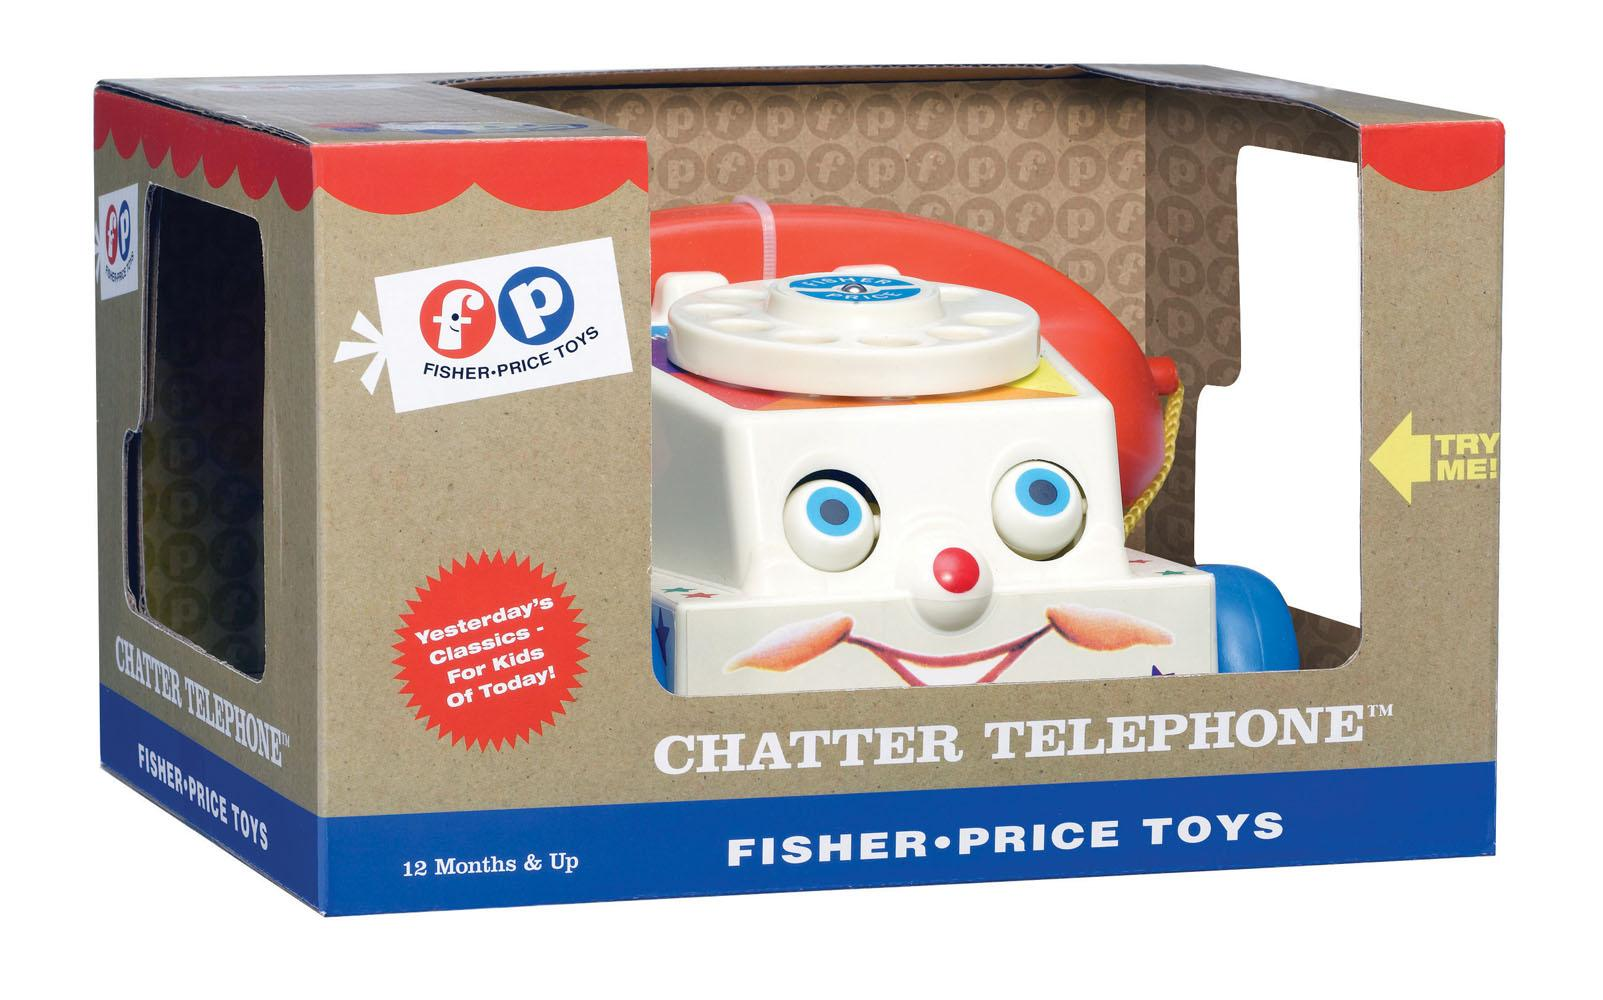 Fisher-Price Classics 1694 Chatter Telephone: Amazon.co.uk ...